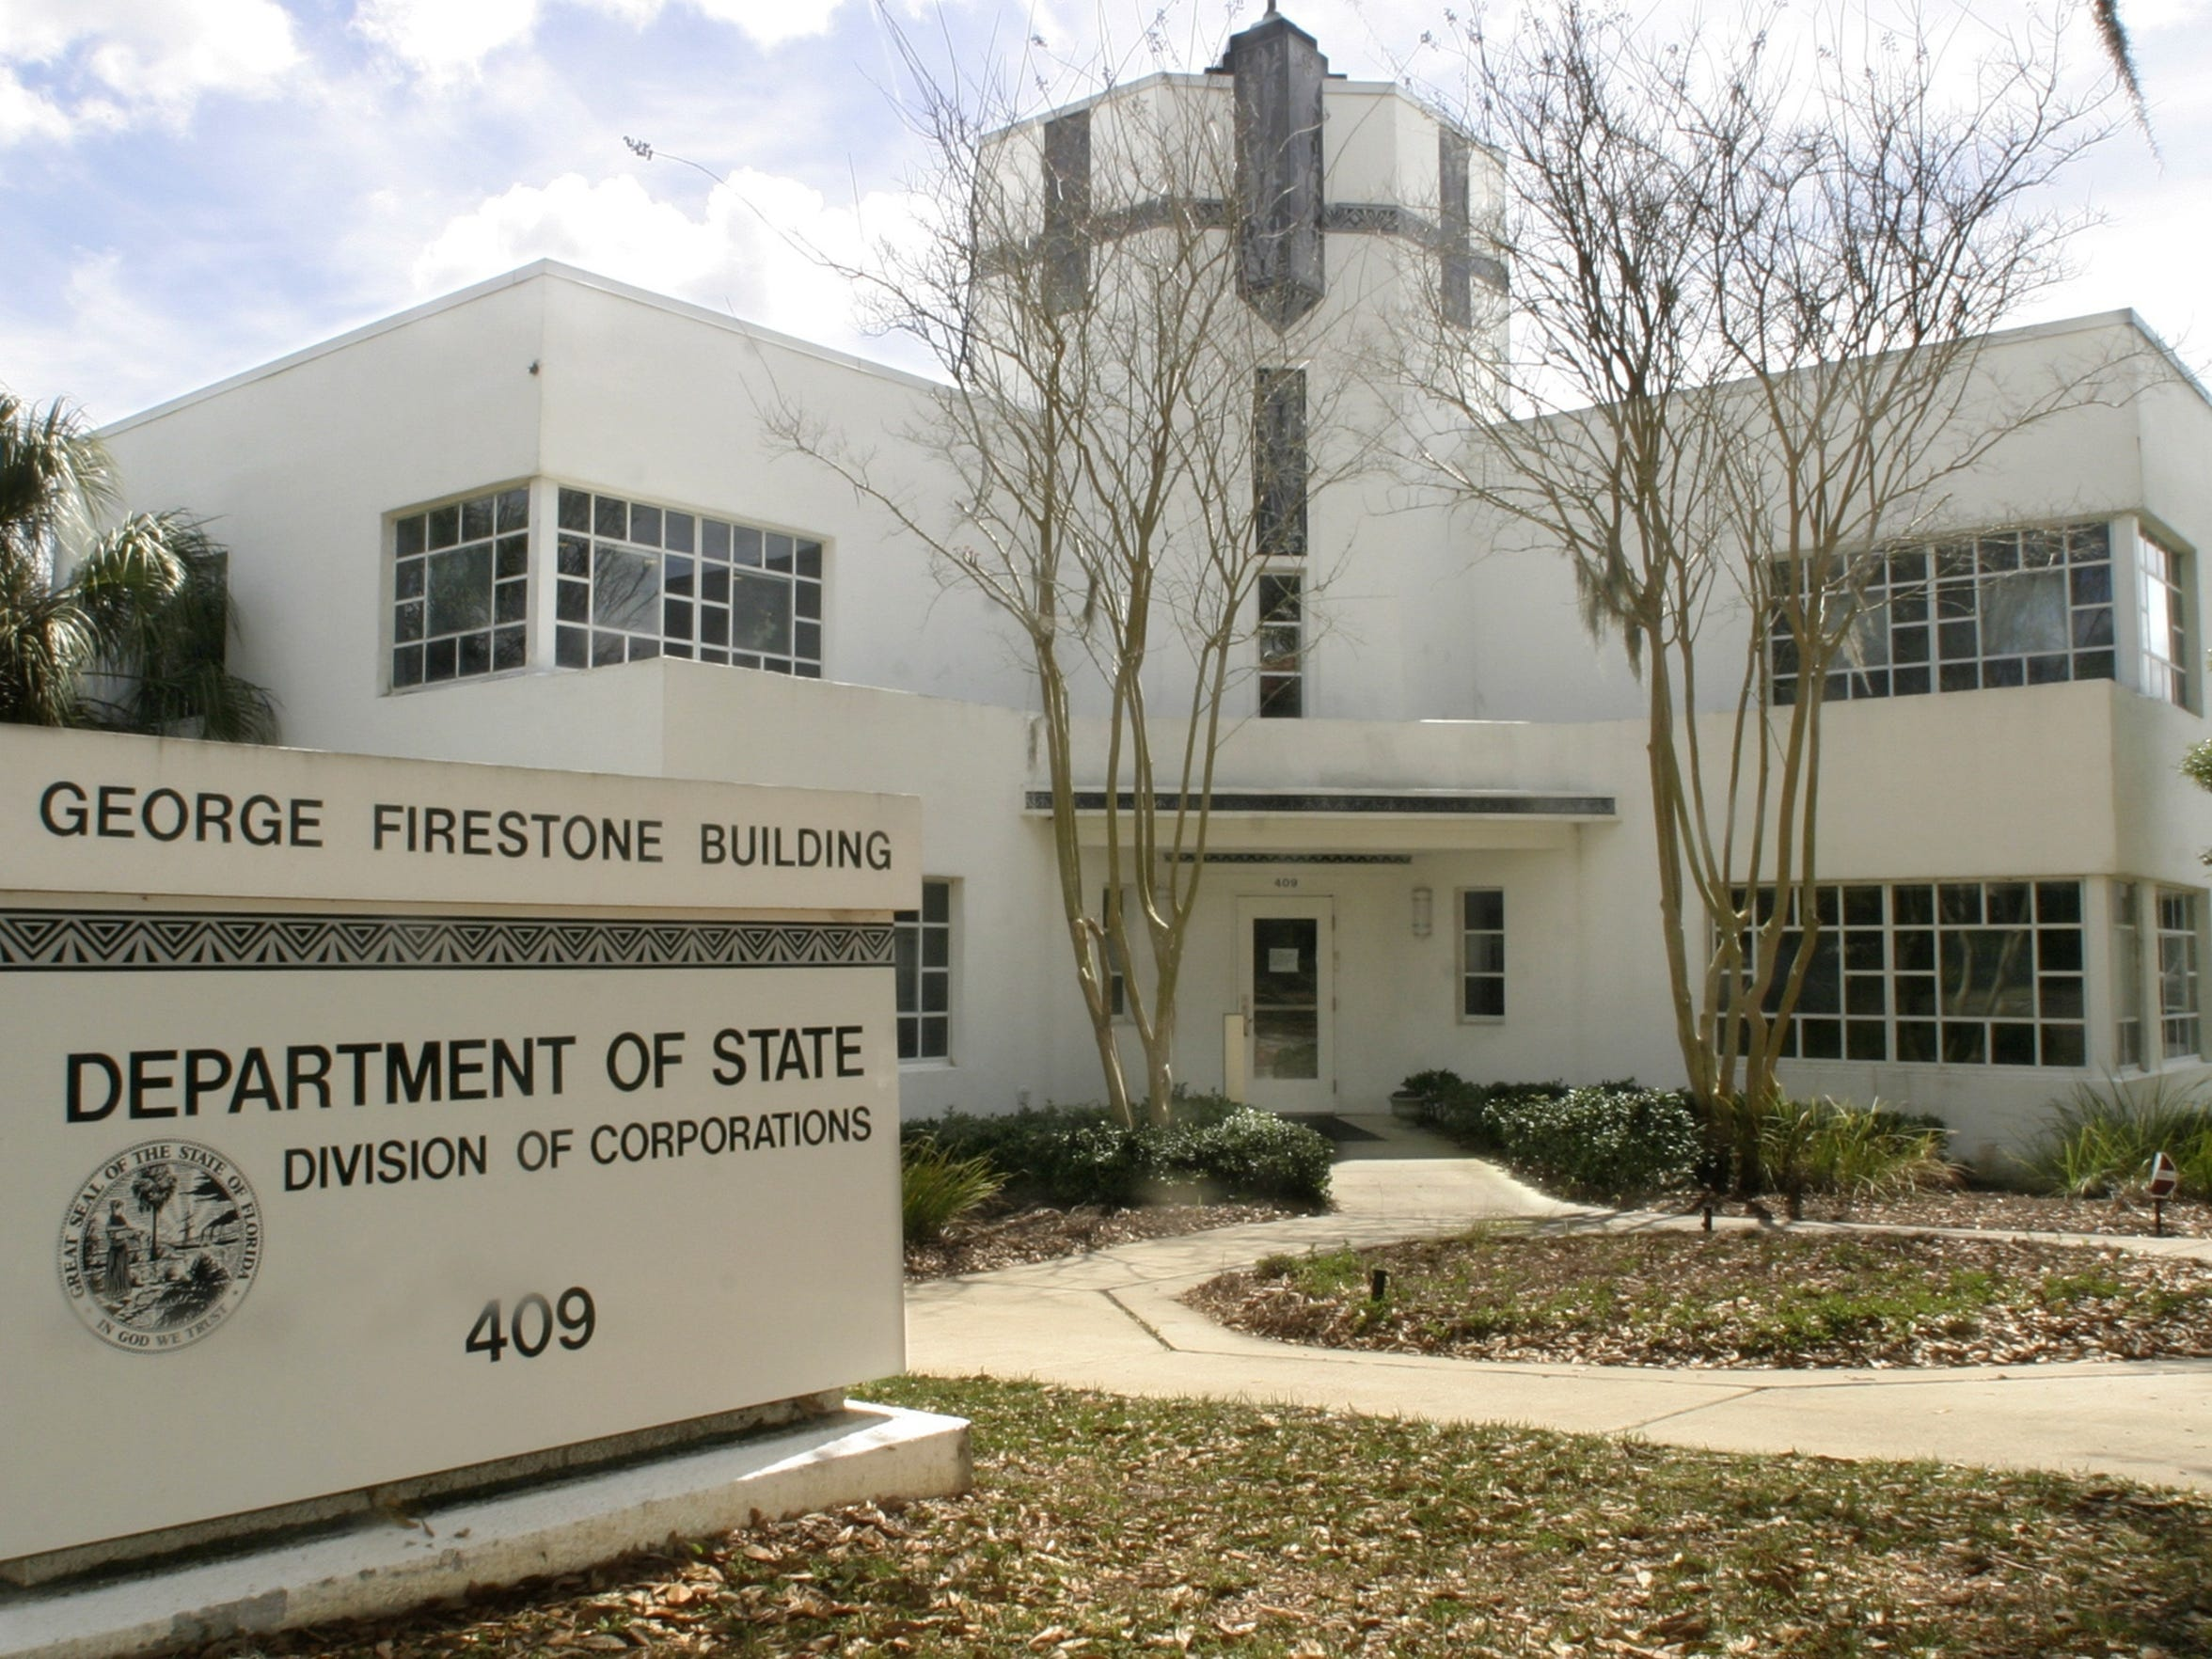 The Community Redevelopment Agency will sell the site of the Firestone building on the edge of Cascades Park to a developer. Using $5.5 million in bed-tax money, the CRA hopes to incorporate art elements into the developer's plans.